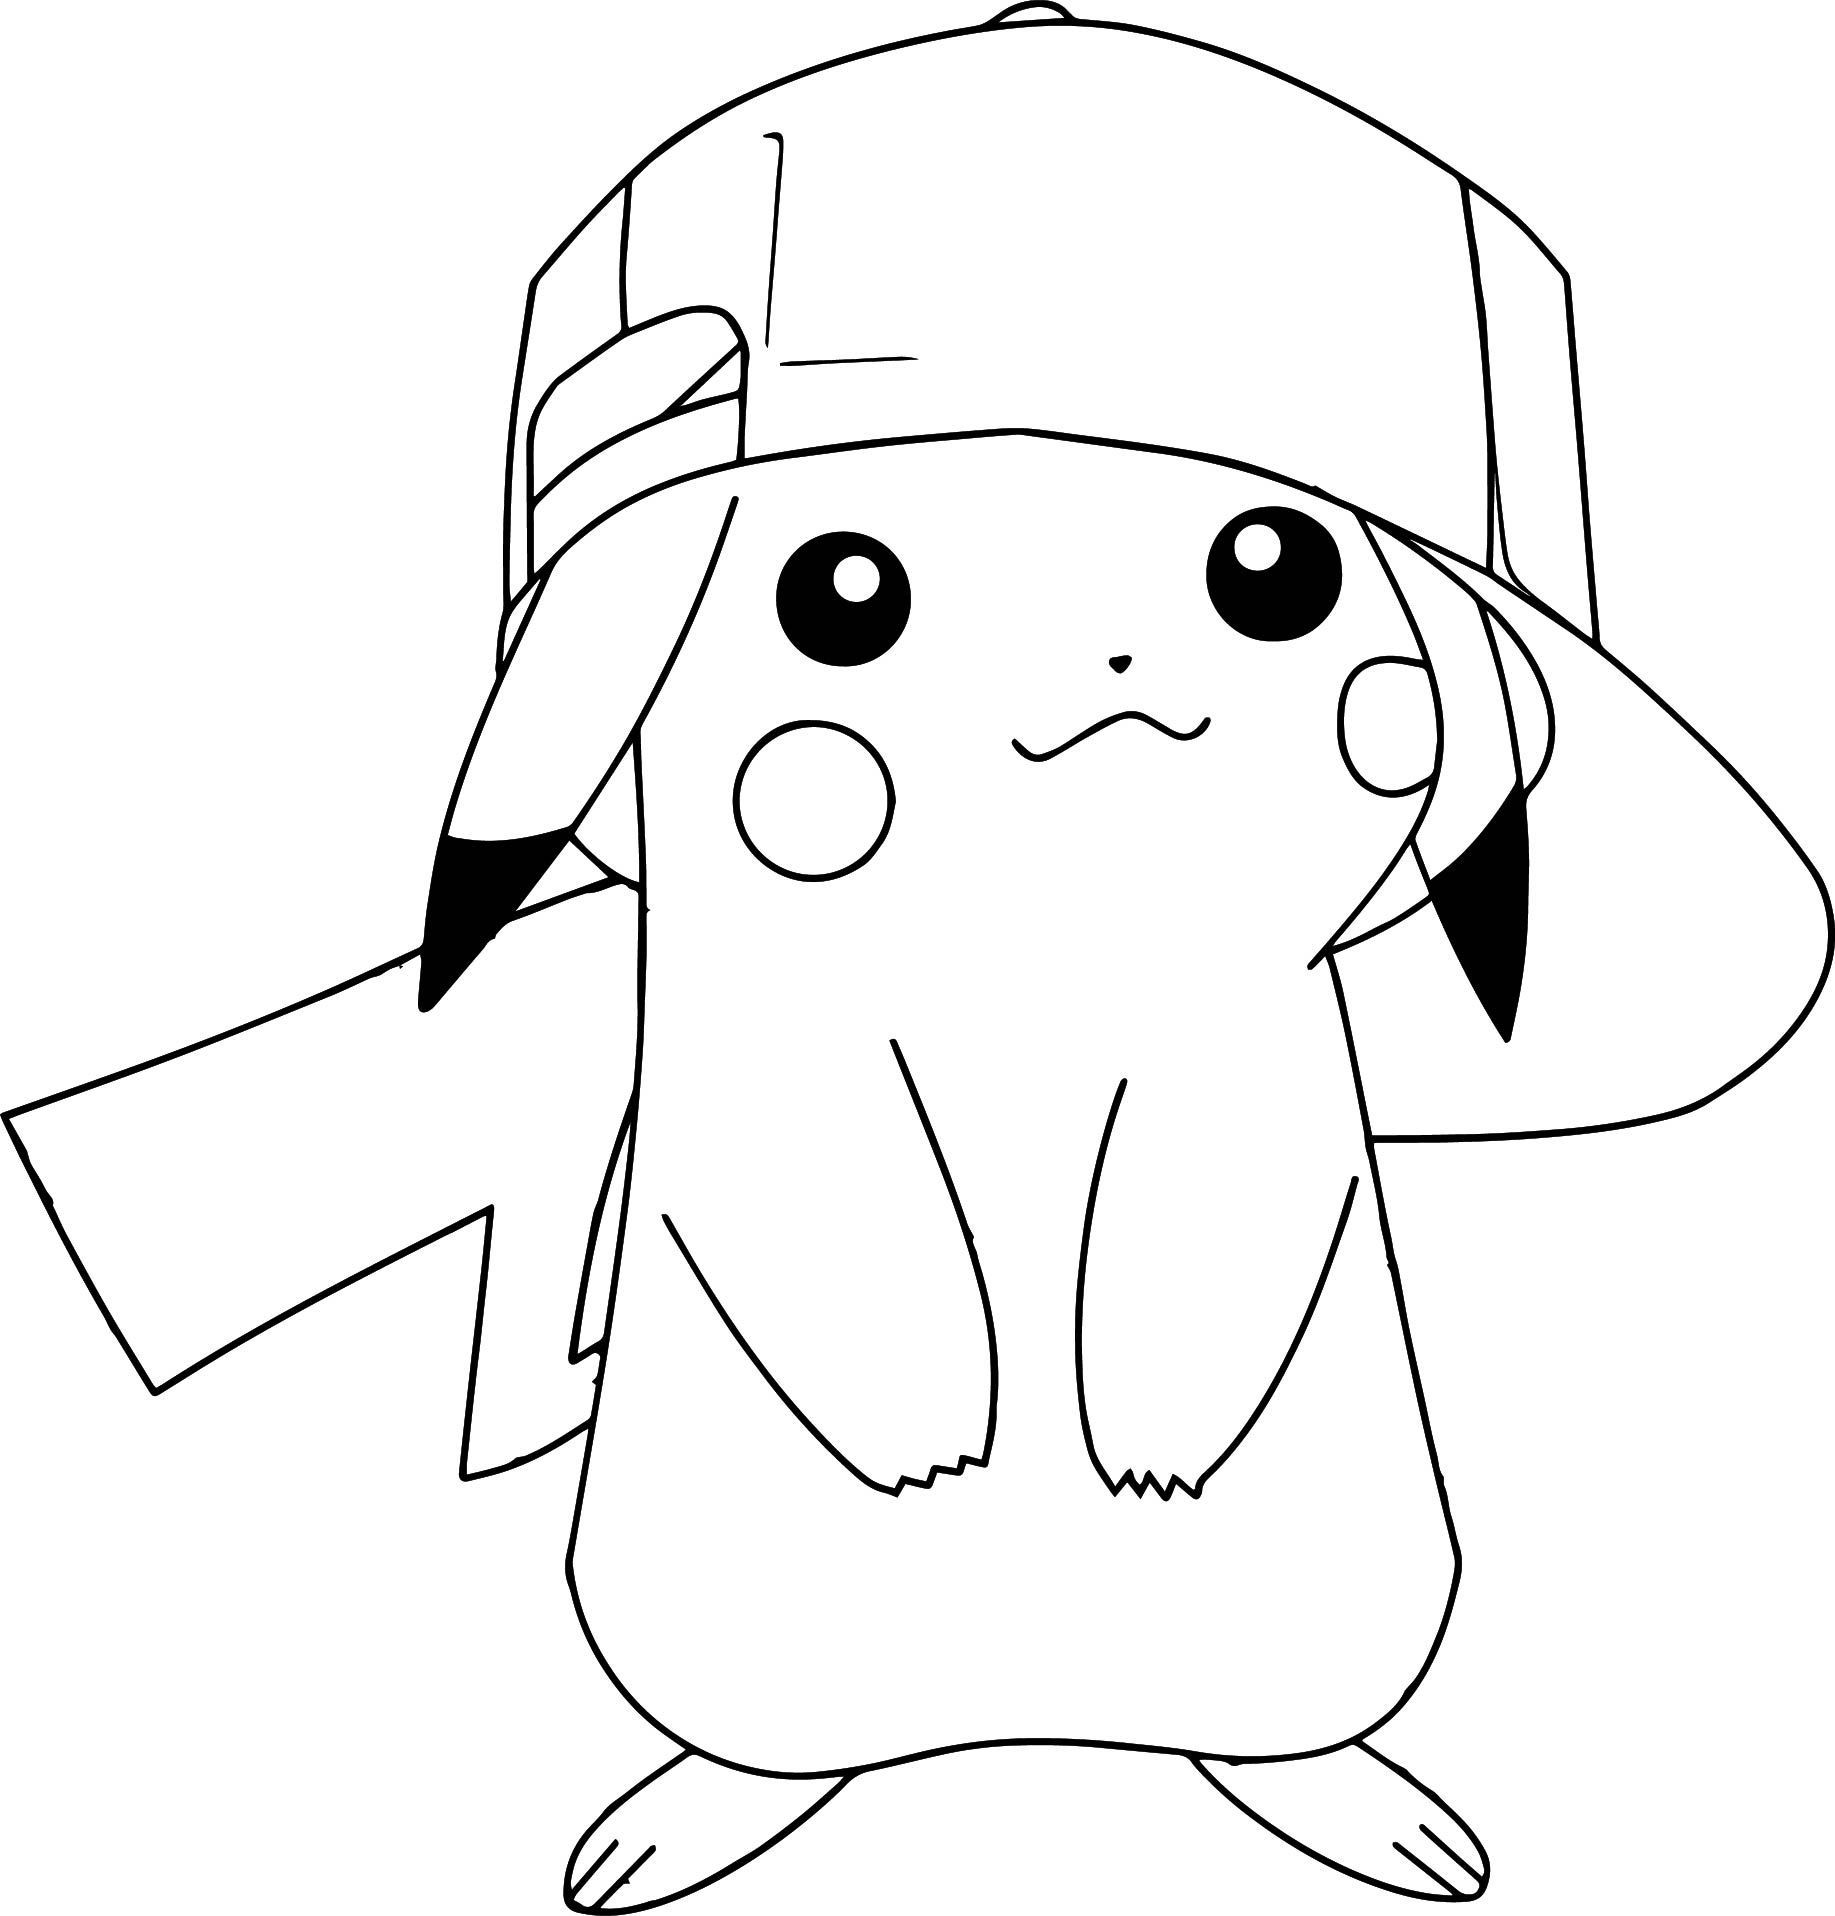 Pokemon Glumanda Ausmalbilder : Pokemon Coloring Pages Pikachu Art Colorings Drawings Etc